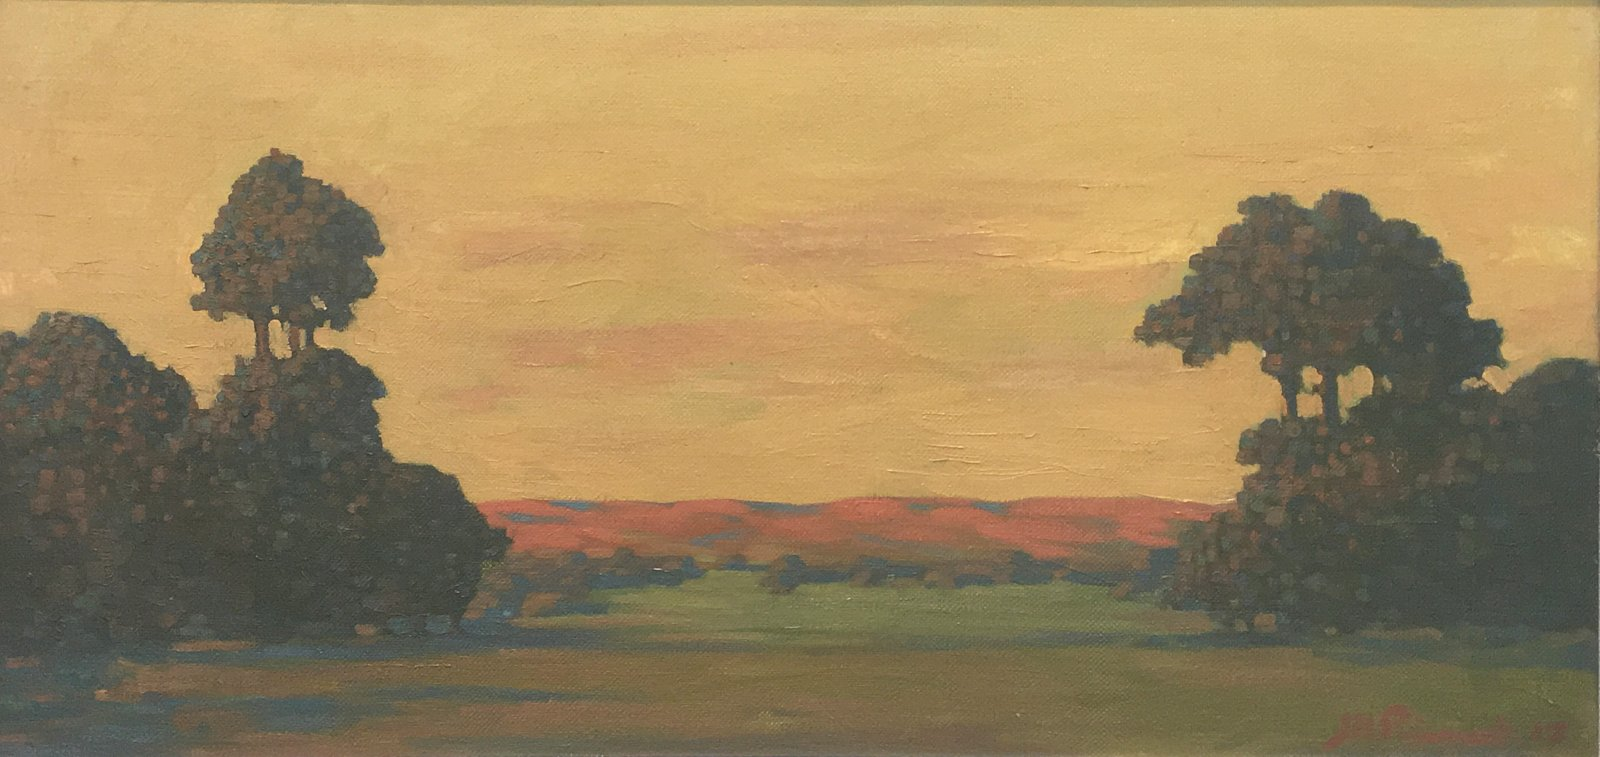 J.H-Pierneef-Landscape-with-trees-Oil-on-canvas-415-x-850mm-ABSOLUT-ART-GALLERY